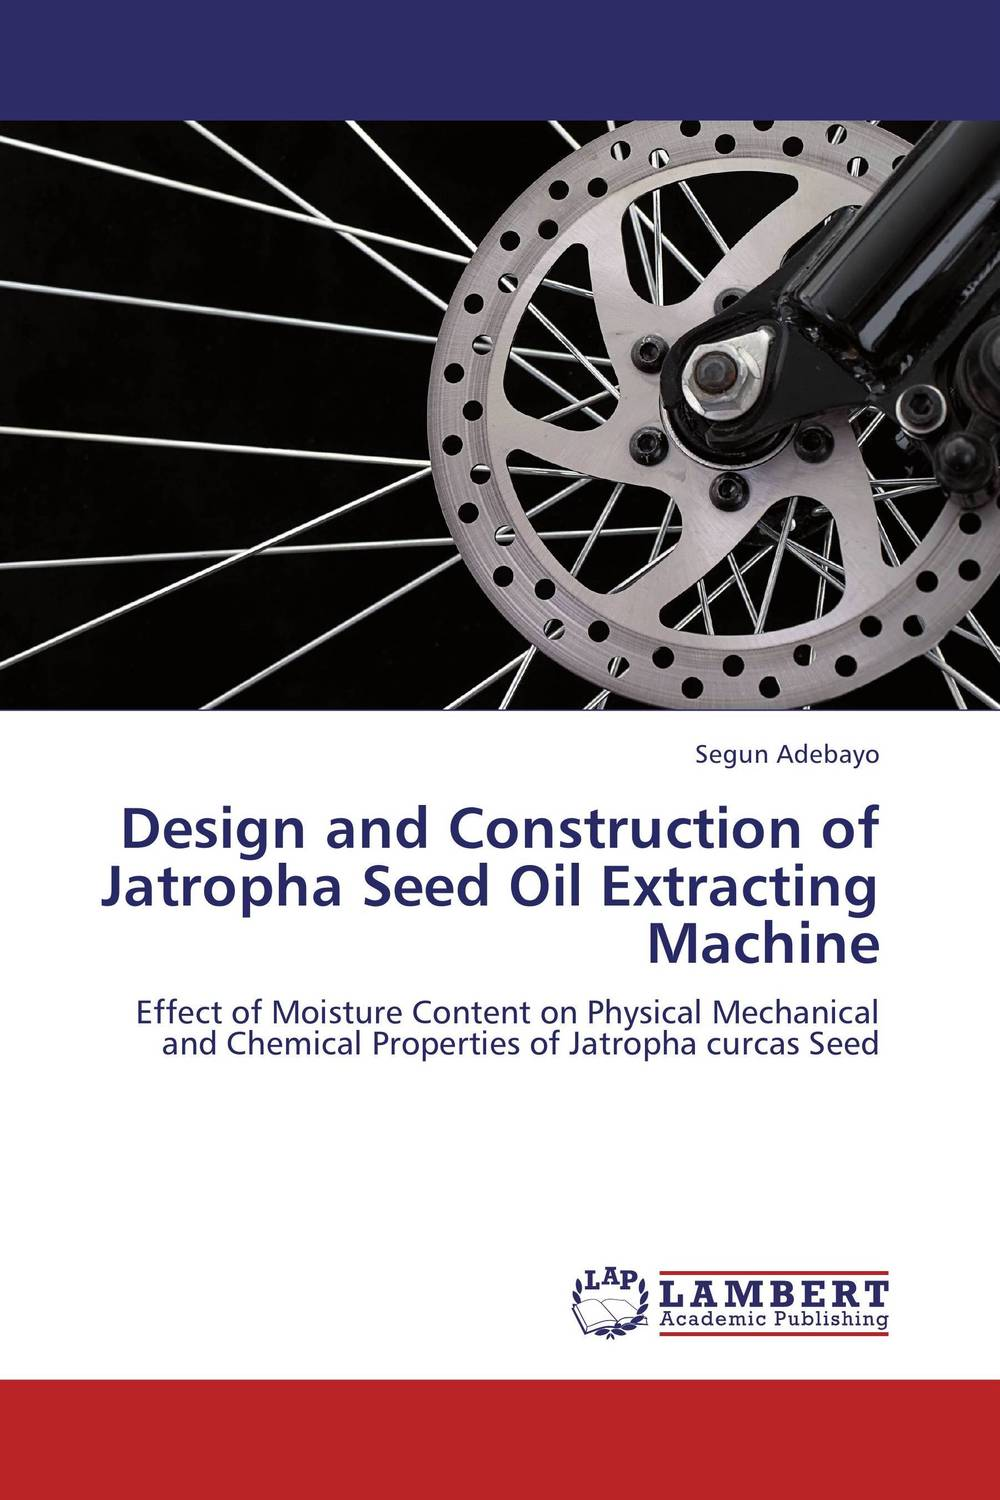 Design and Construction of Jatropha Seed Oil Extracting Machine muhammad firdaus sulaiman estimation of carbon footprint in jatropha curcas seed production